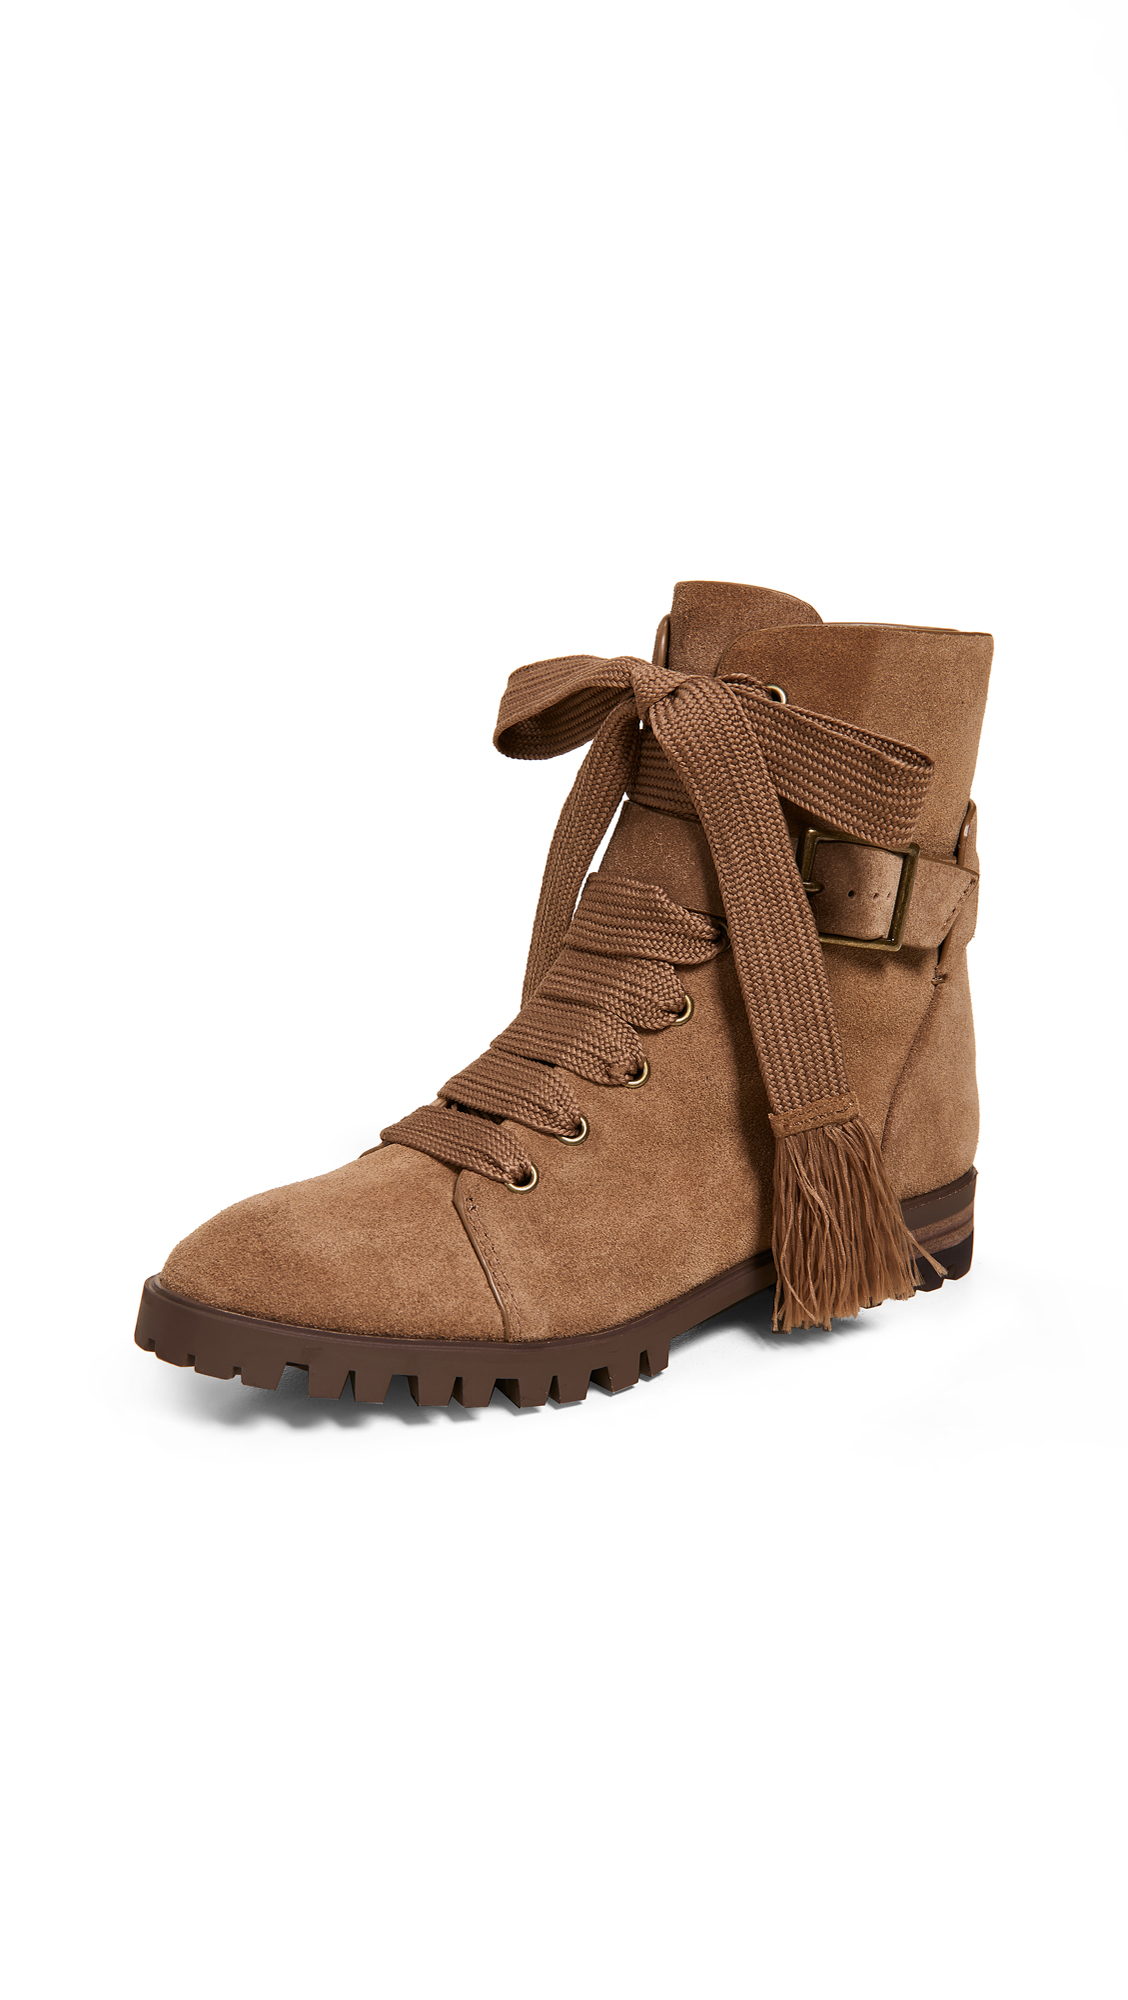 Splendid Celine Combat Boots - Light Brown